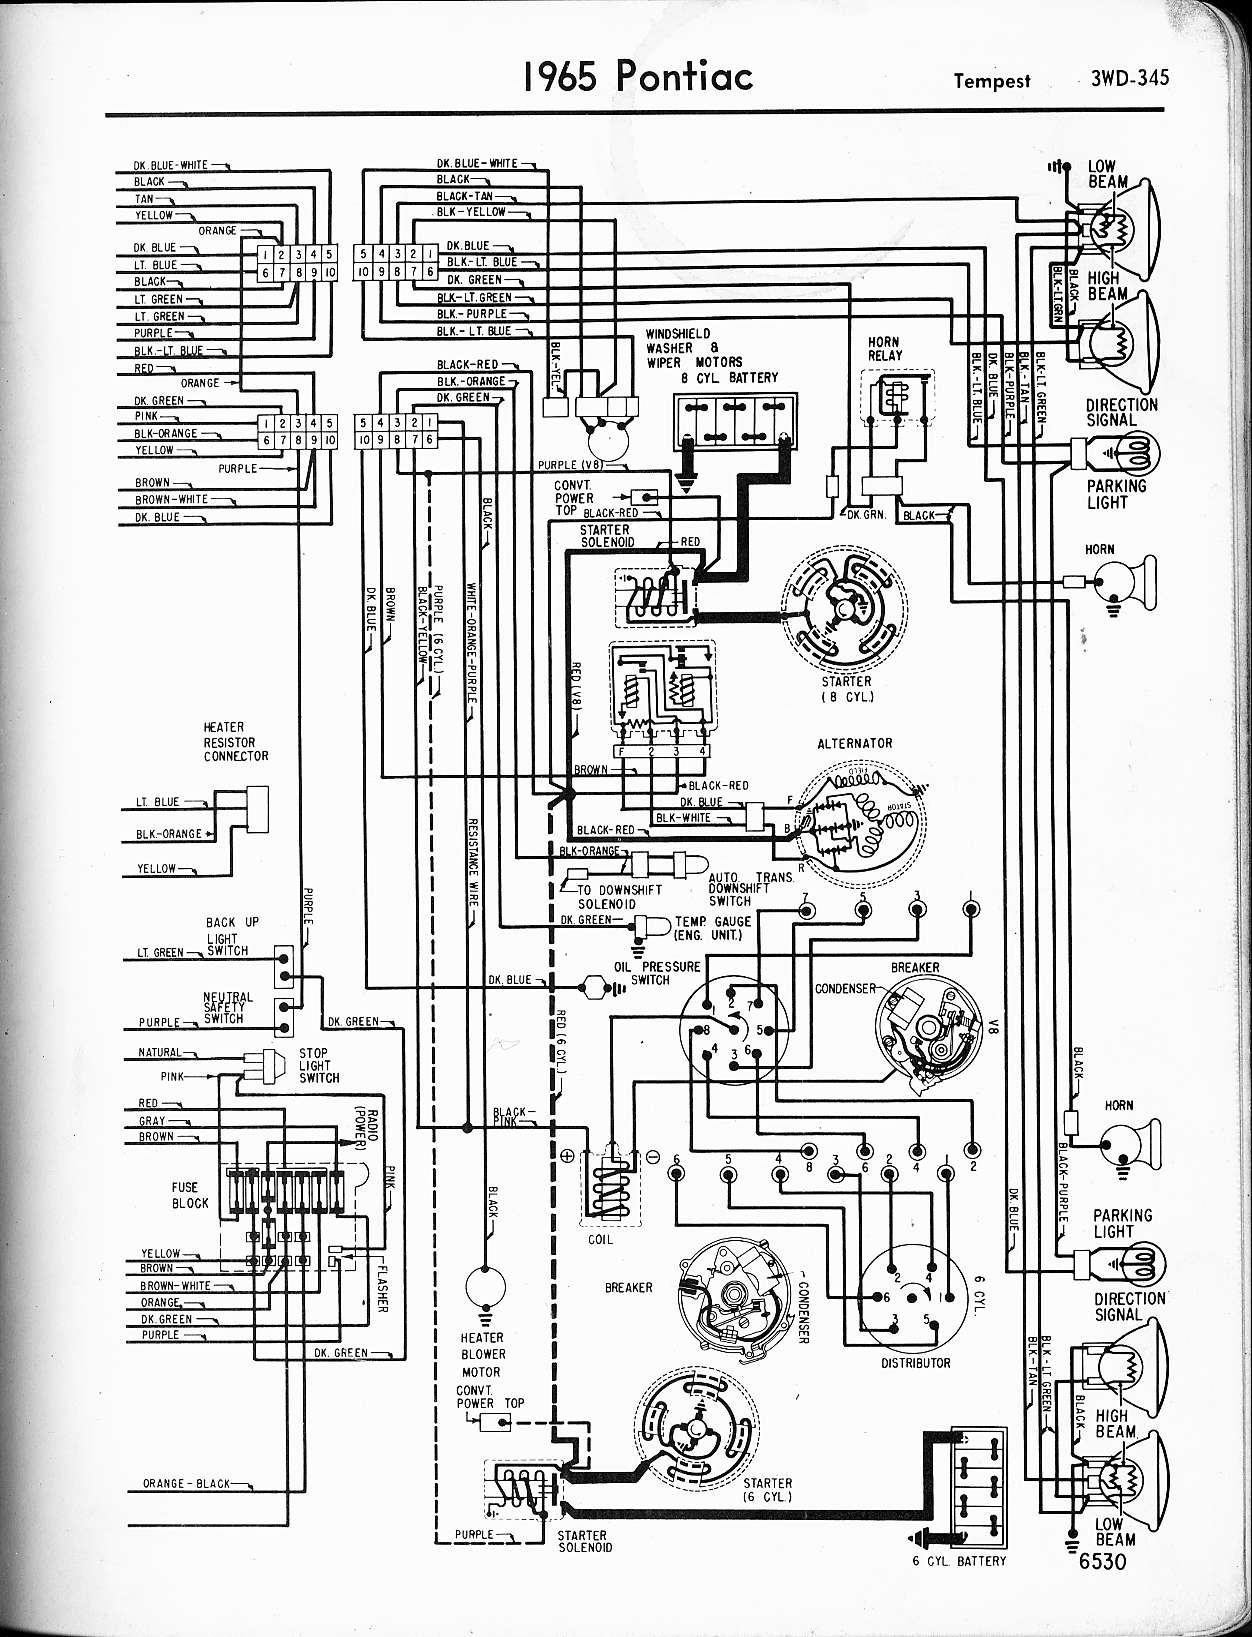 1968 Gto Wiring Harness Diagram Data Mustang Mach 460 2006 Pontiac Judge